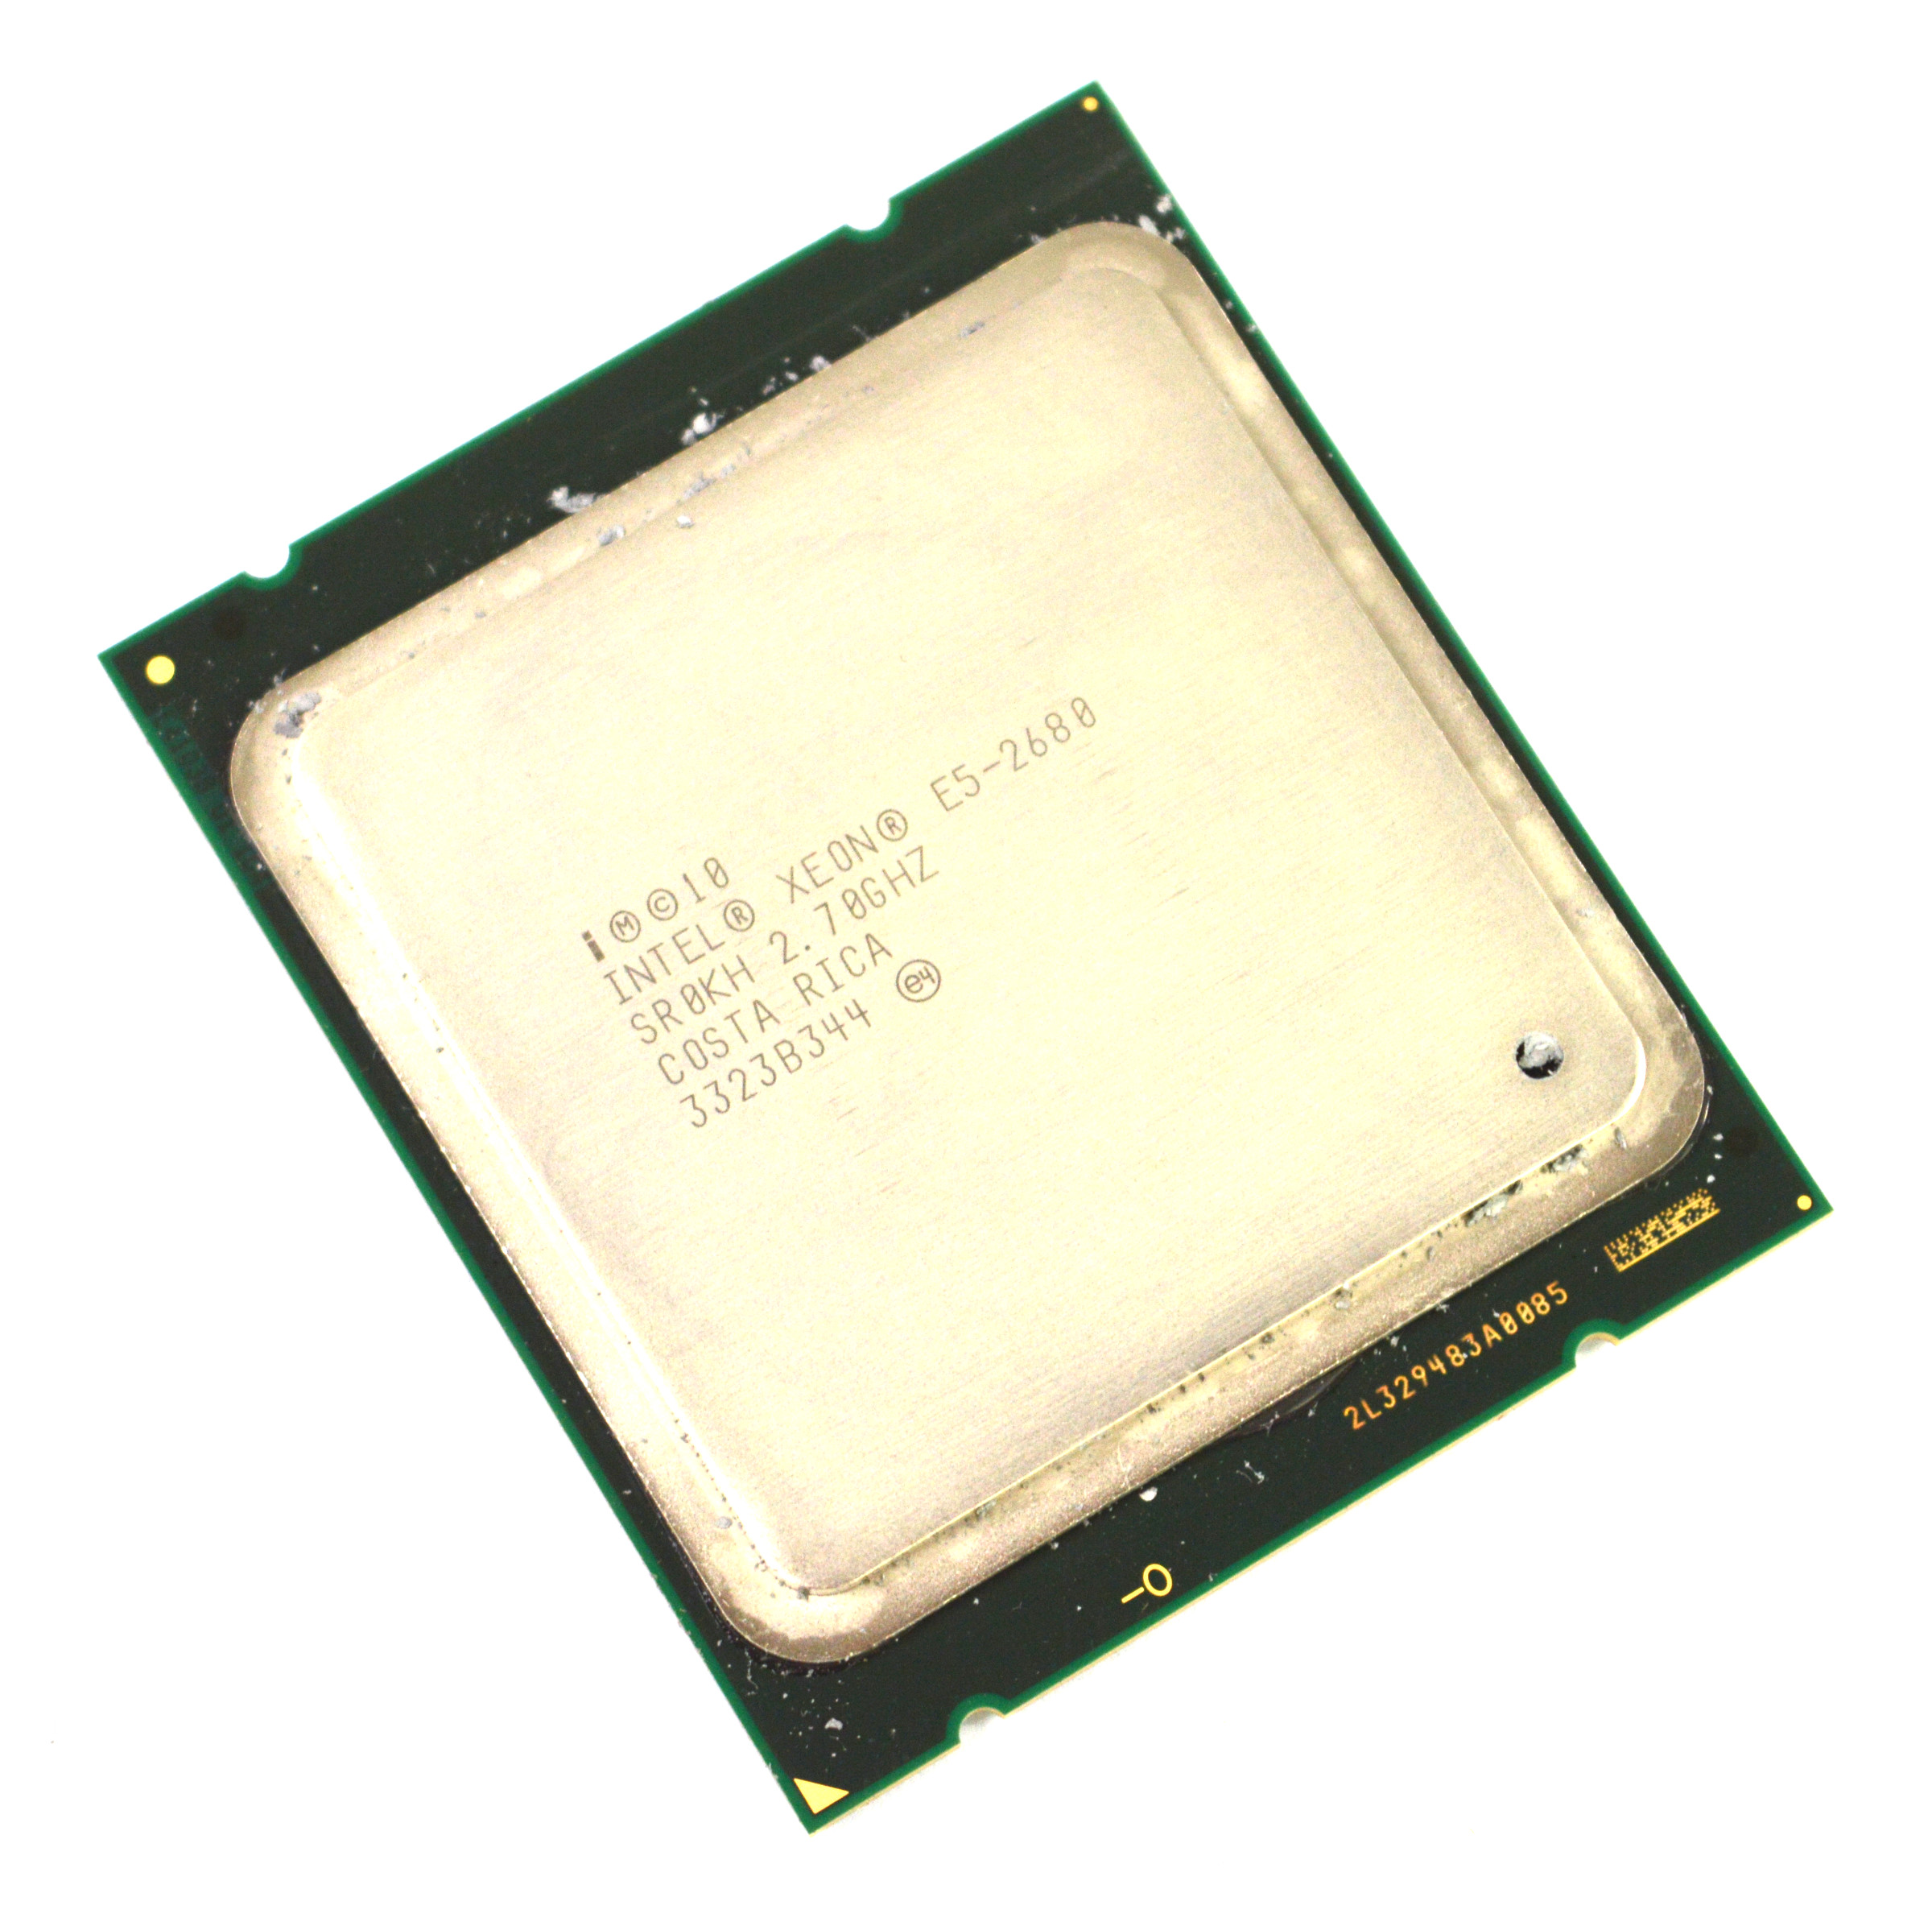 SR0KH Intel Xeon E5-2680 2.70GHz 8 Core LGA2011 CPU Processor